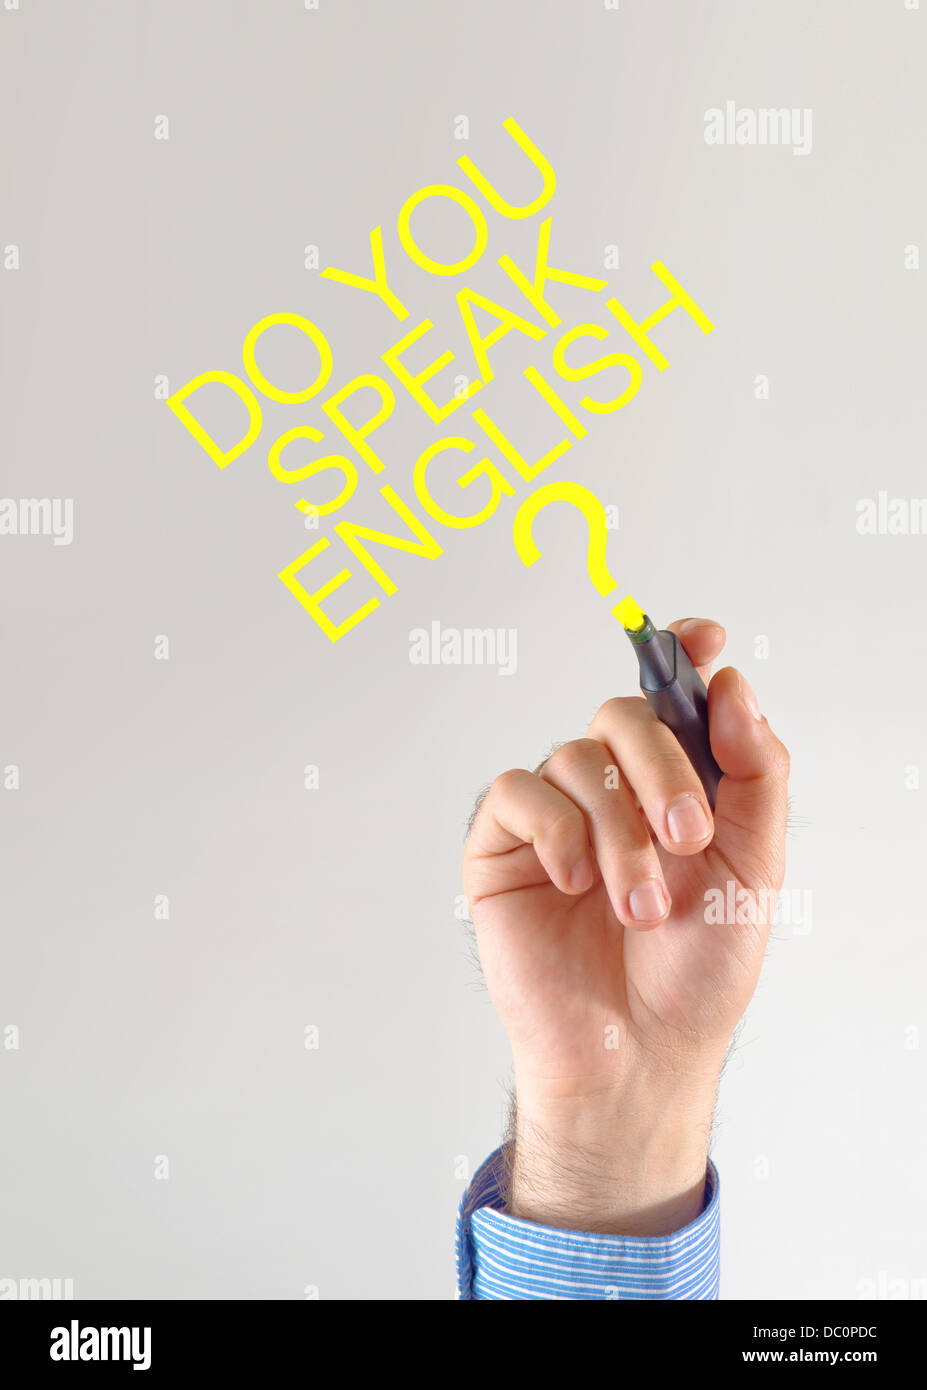 Do you speak English. Teacher writing with yellow marker pen on the screen - Stock Image